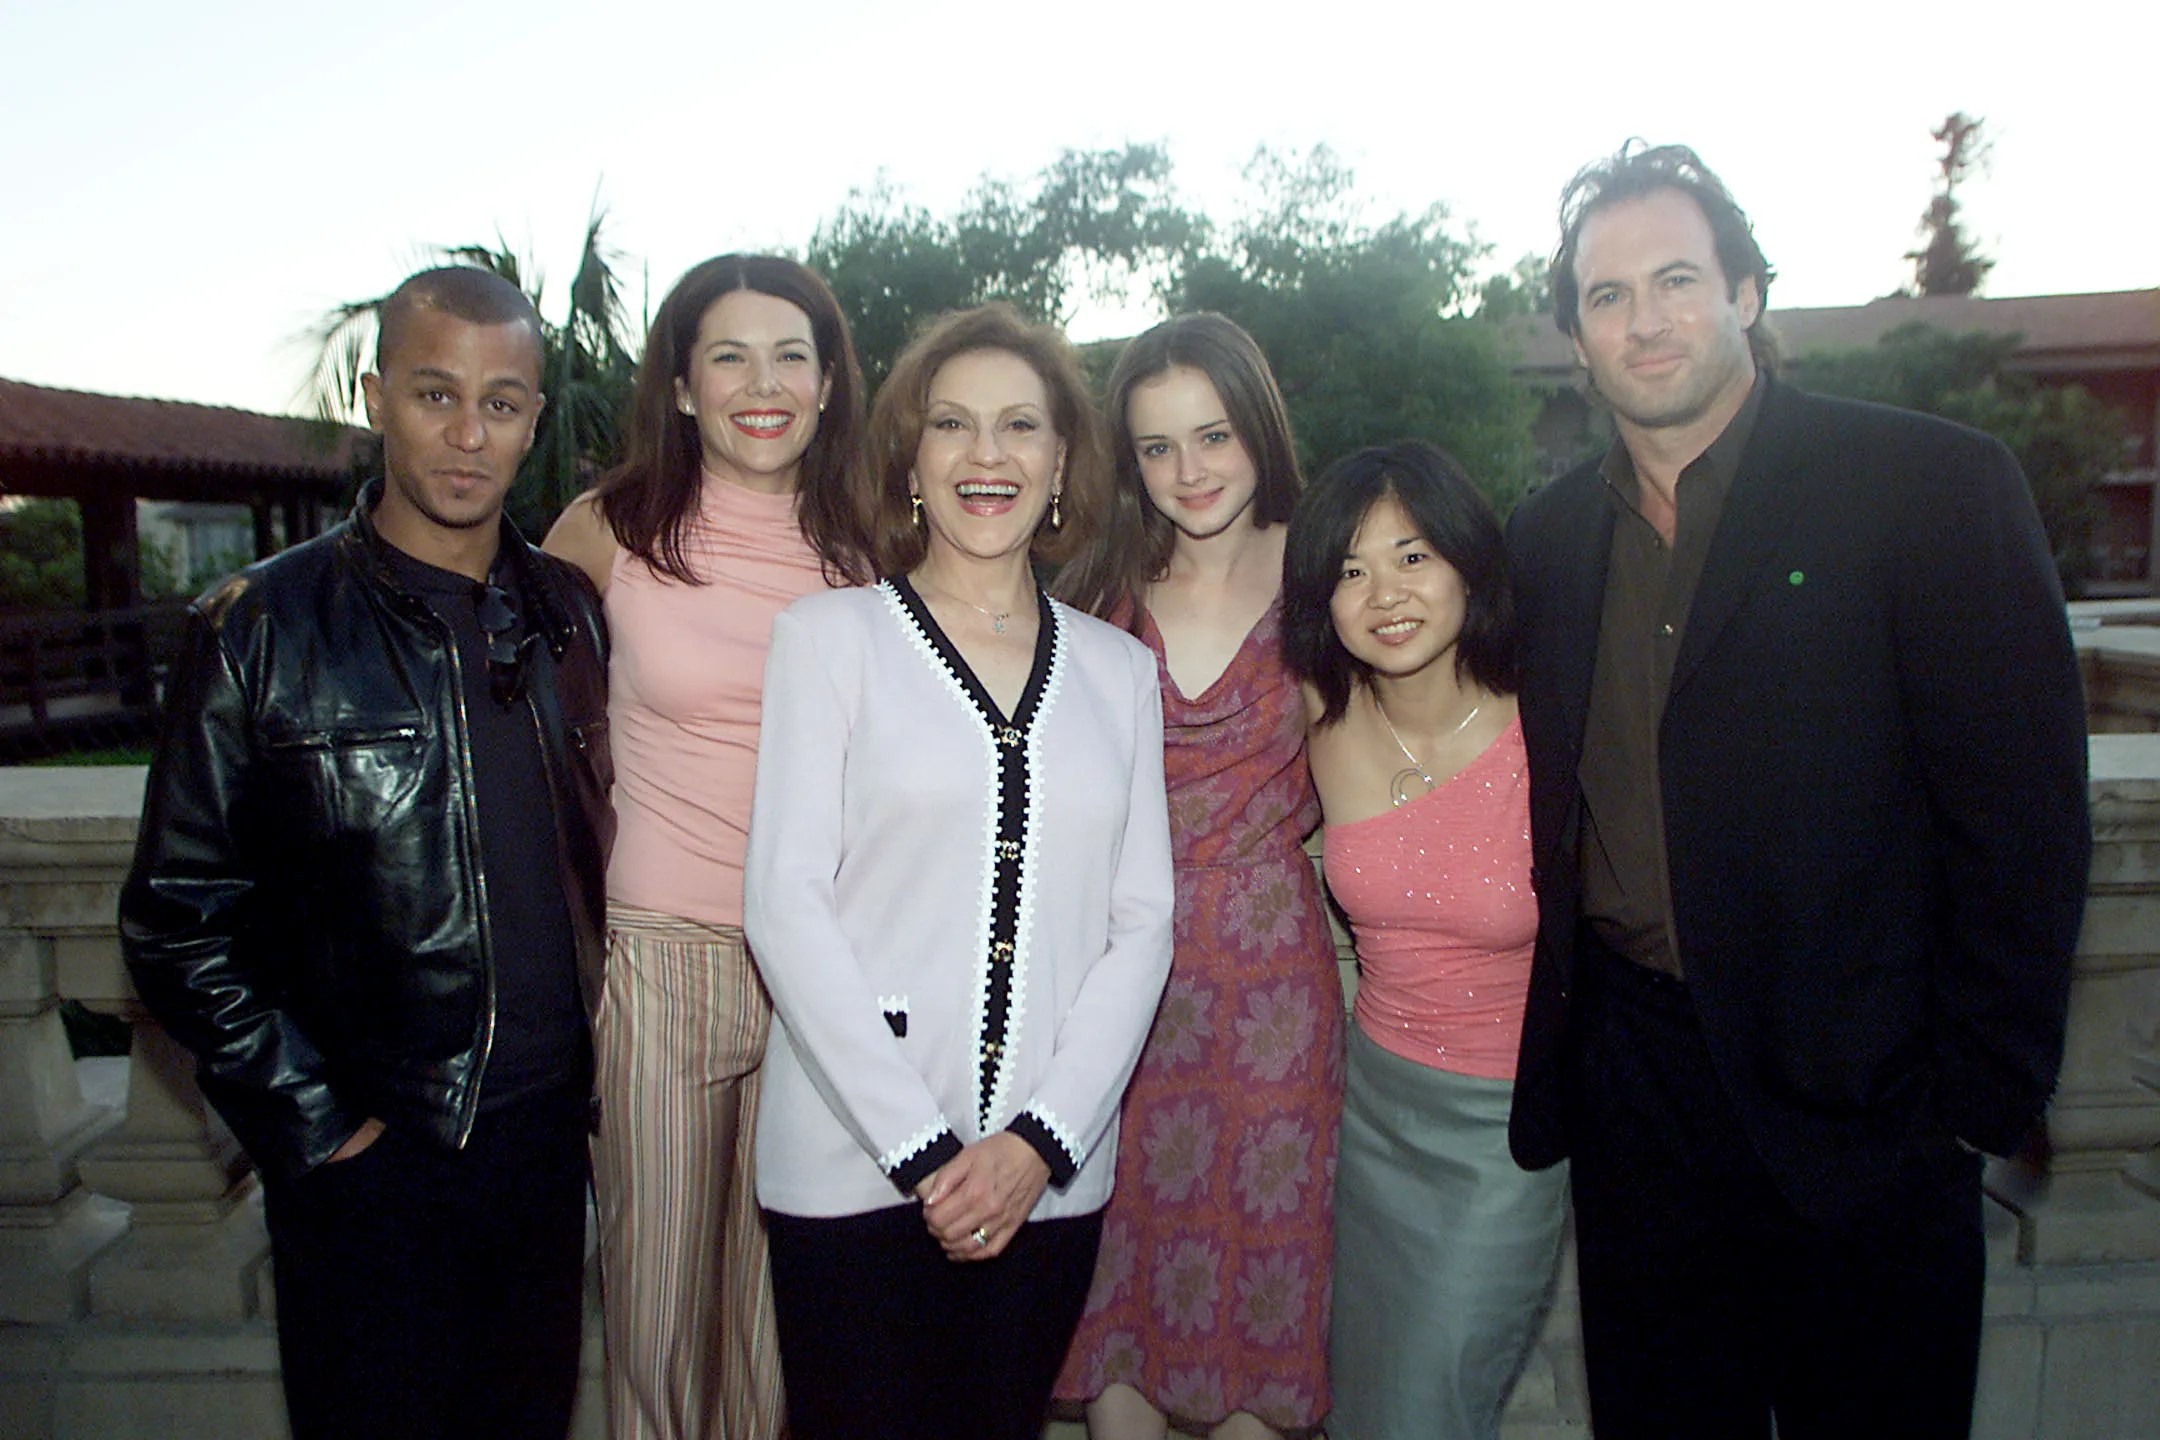 Gilmore Girls A Year In The Life Wallpaper The Gilmore Girls Cast Photos Then And Now Glamour